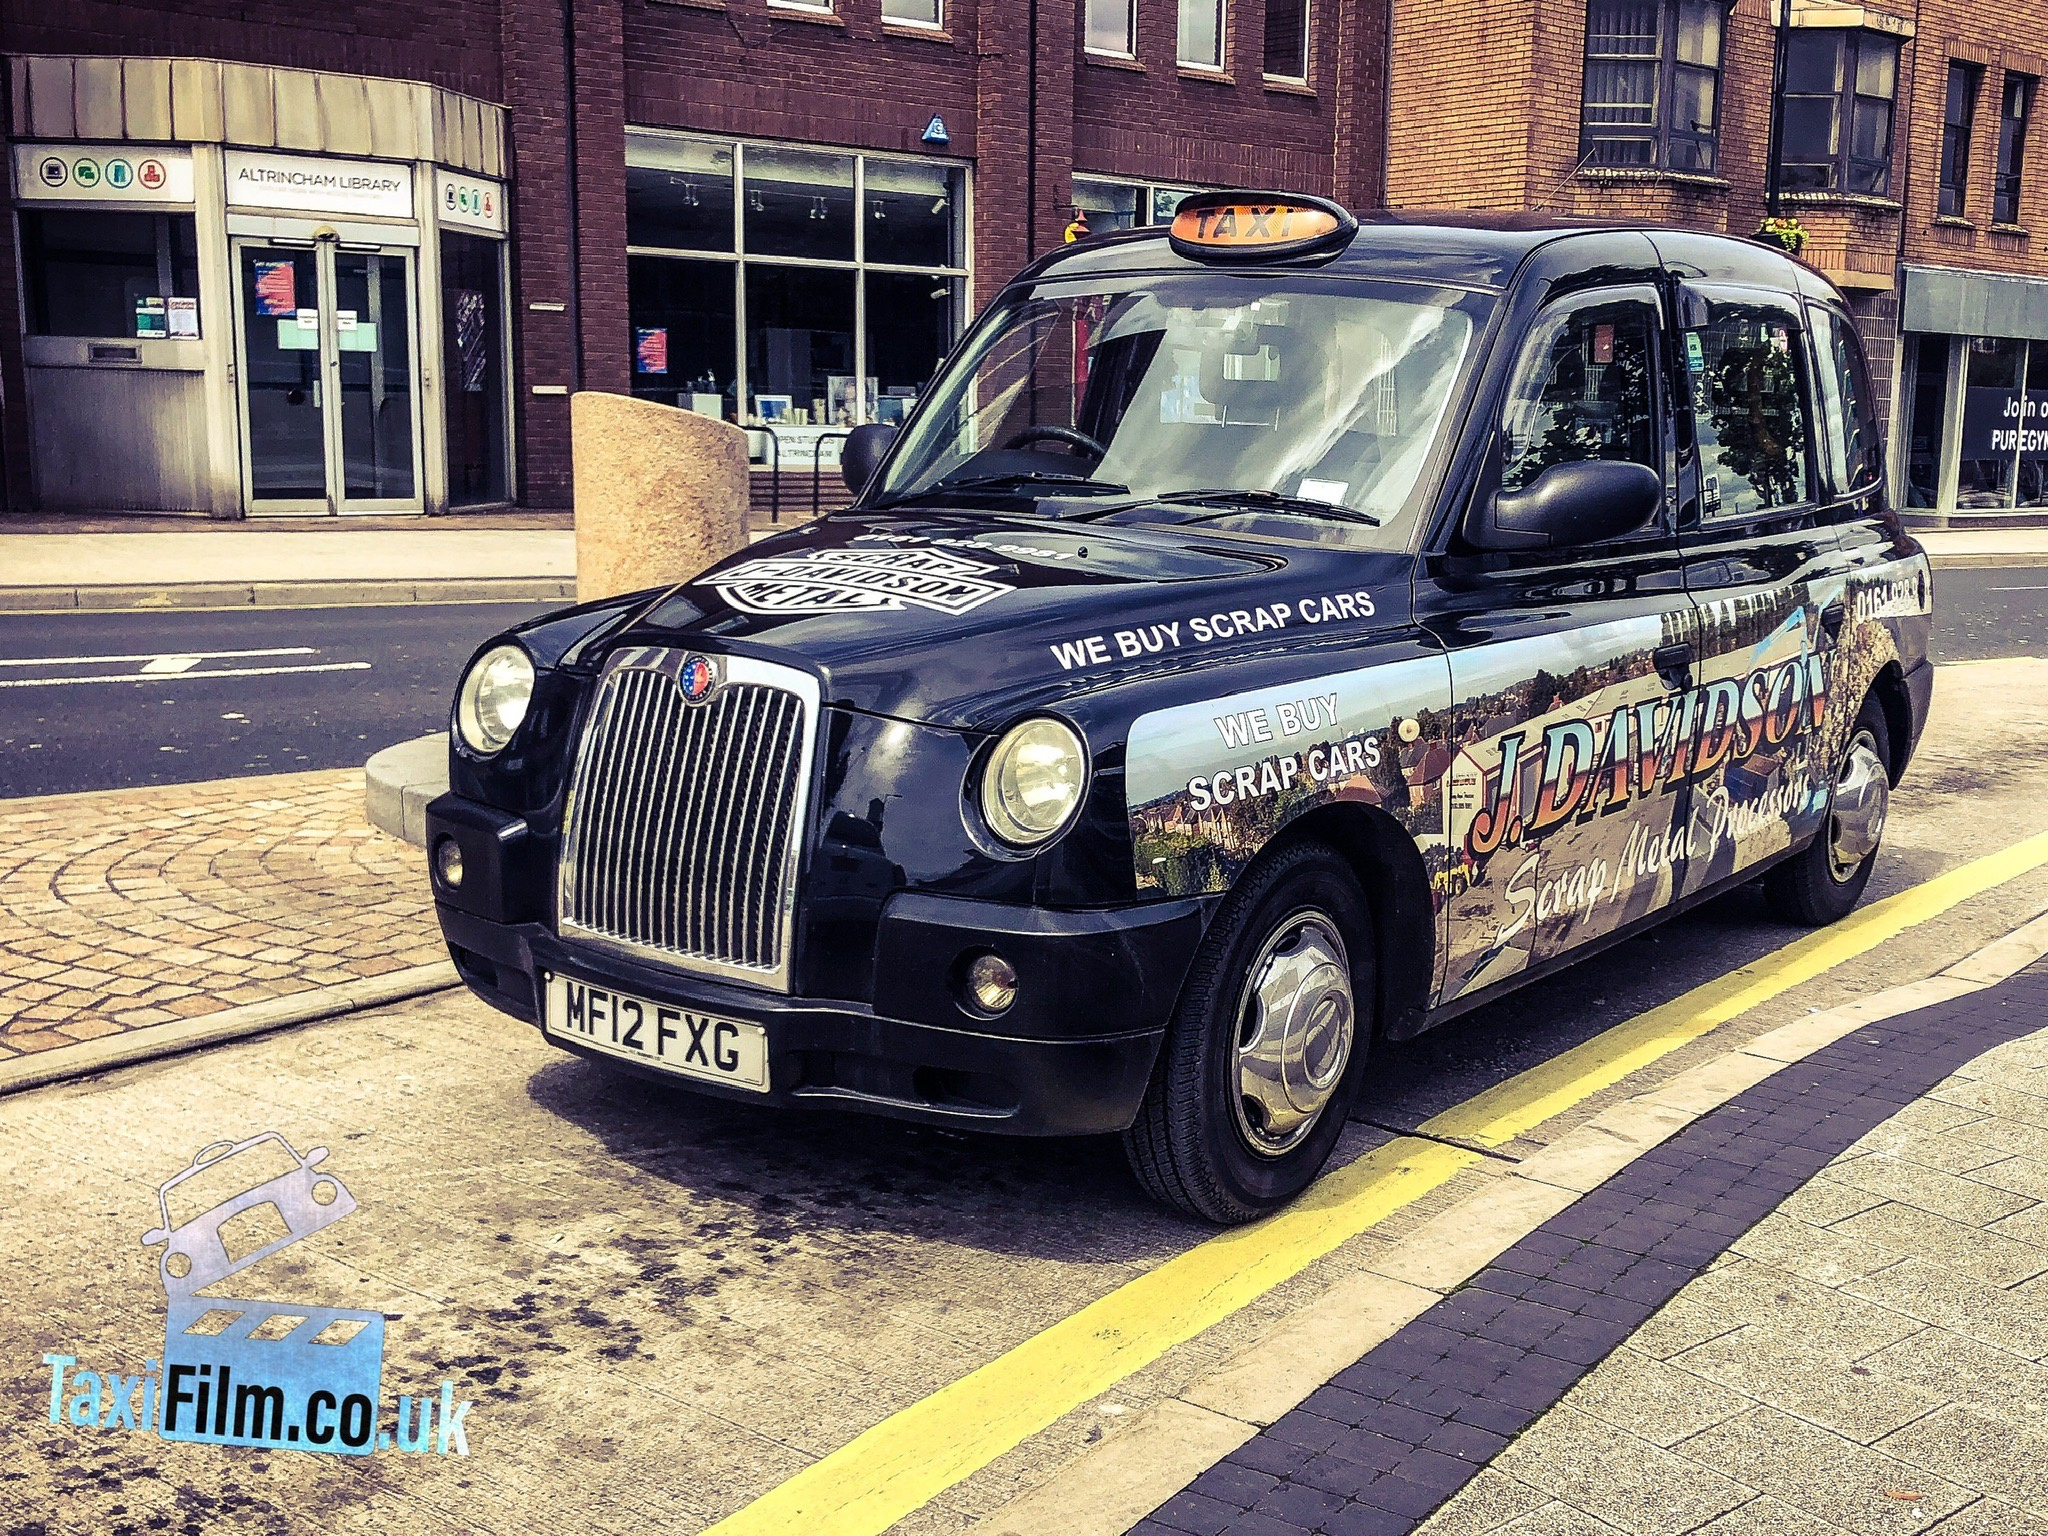 Black Tx4 Ads Taxi, 2012, Manchester ref M0006